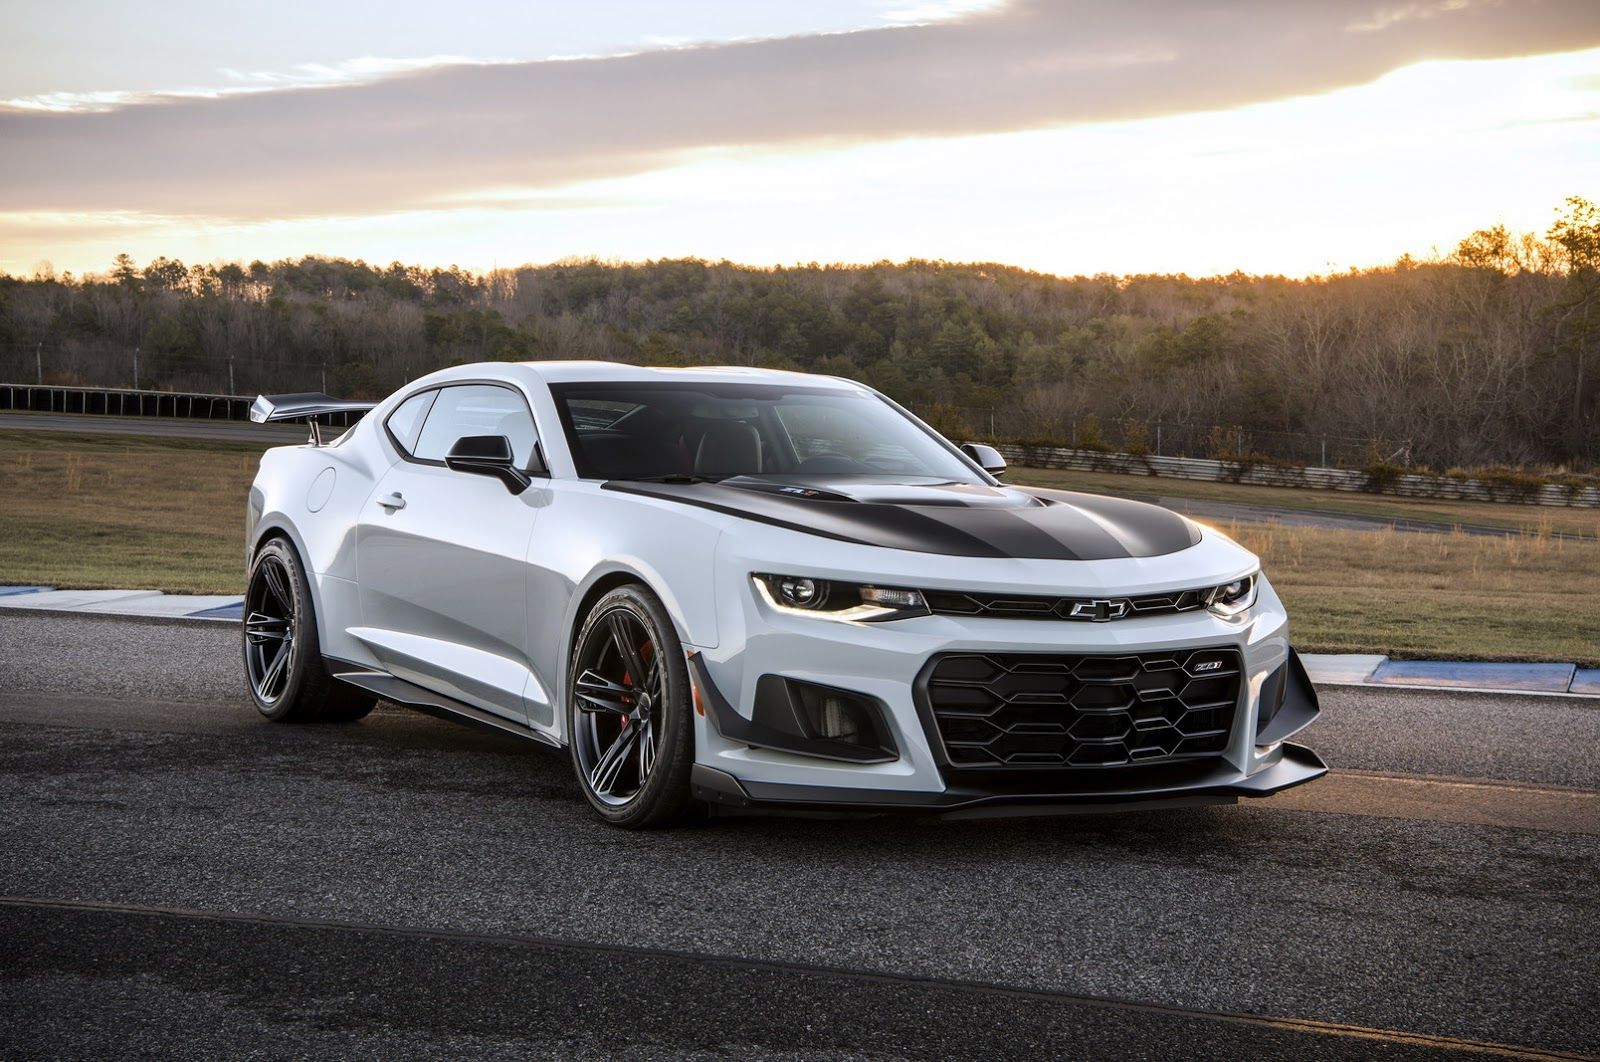 2017 Chevrolet Camaro Zl1 Does 0 60 Mph In First Gear With